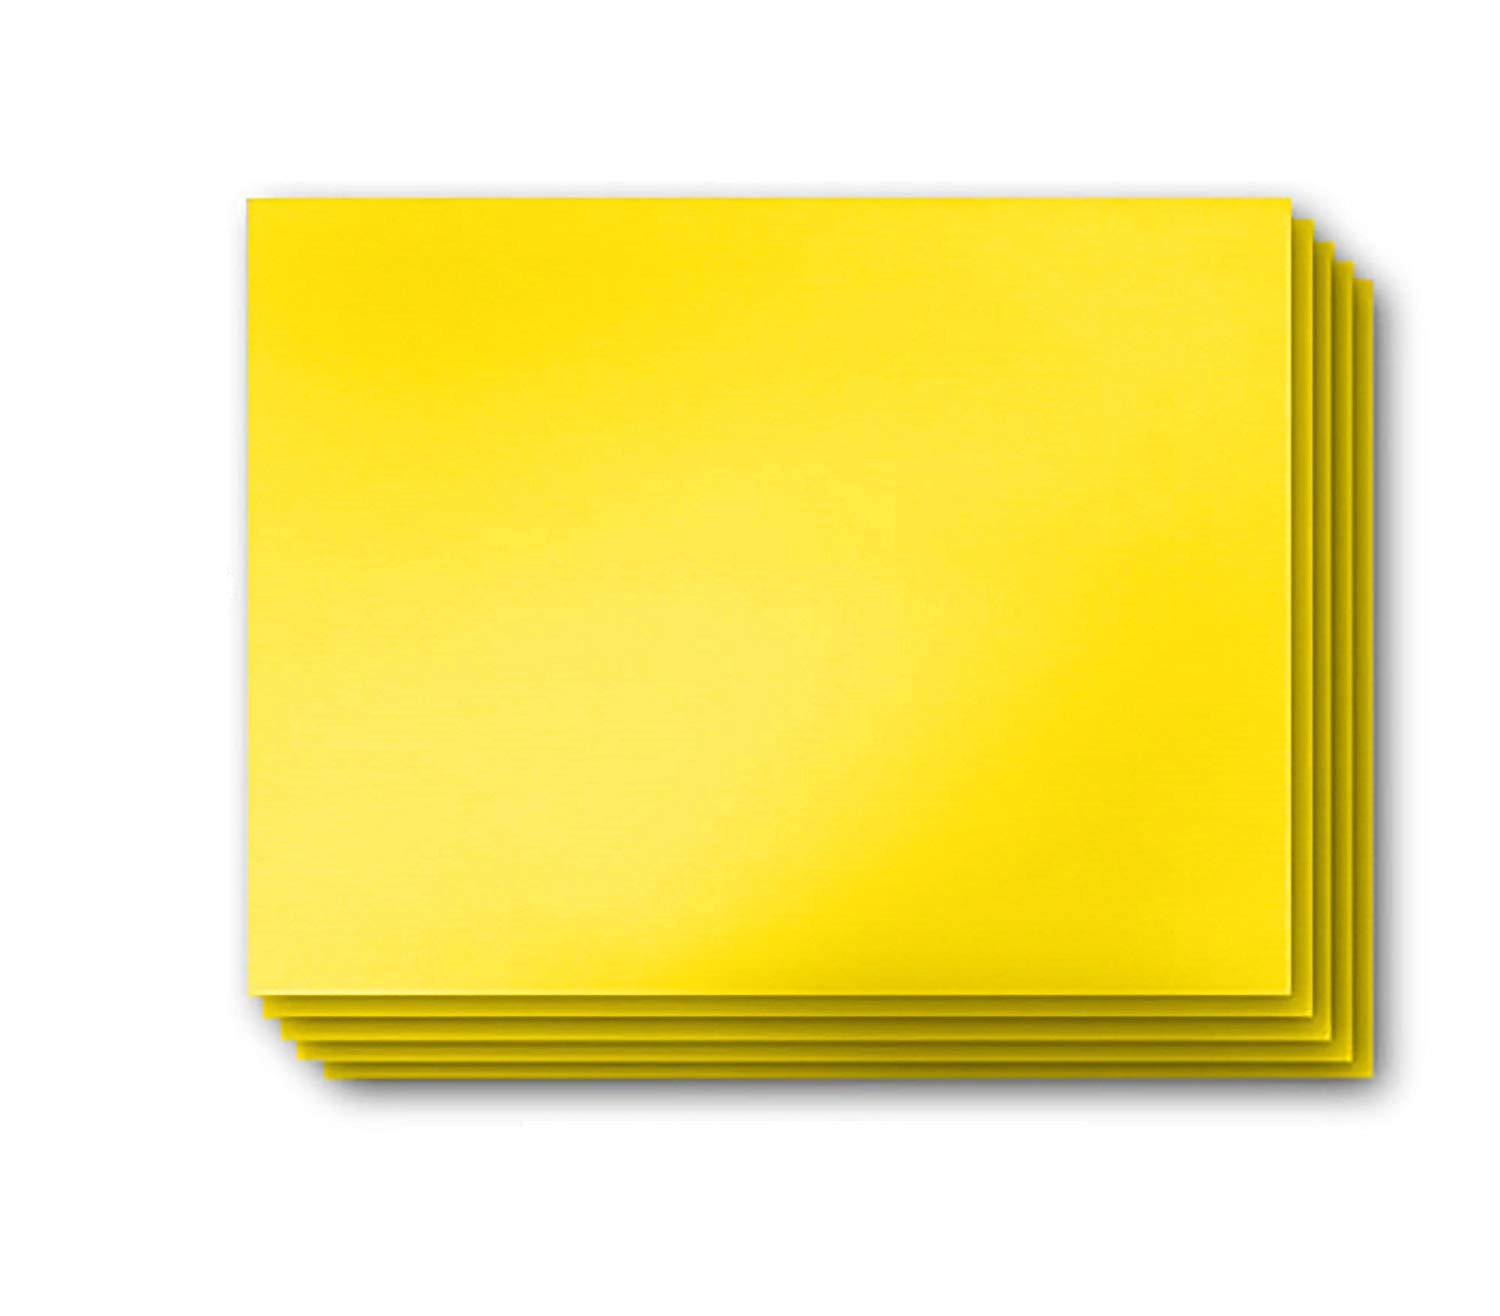 Vibe Ink 4MM Yellow Blank Signs 24'' x 18'' Sheets High Grade Corrugated Plastic Short-Flute Indoor/Outdoor - Bulk Bundles (25)